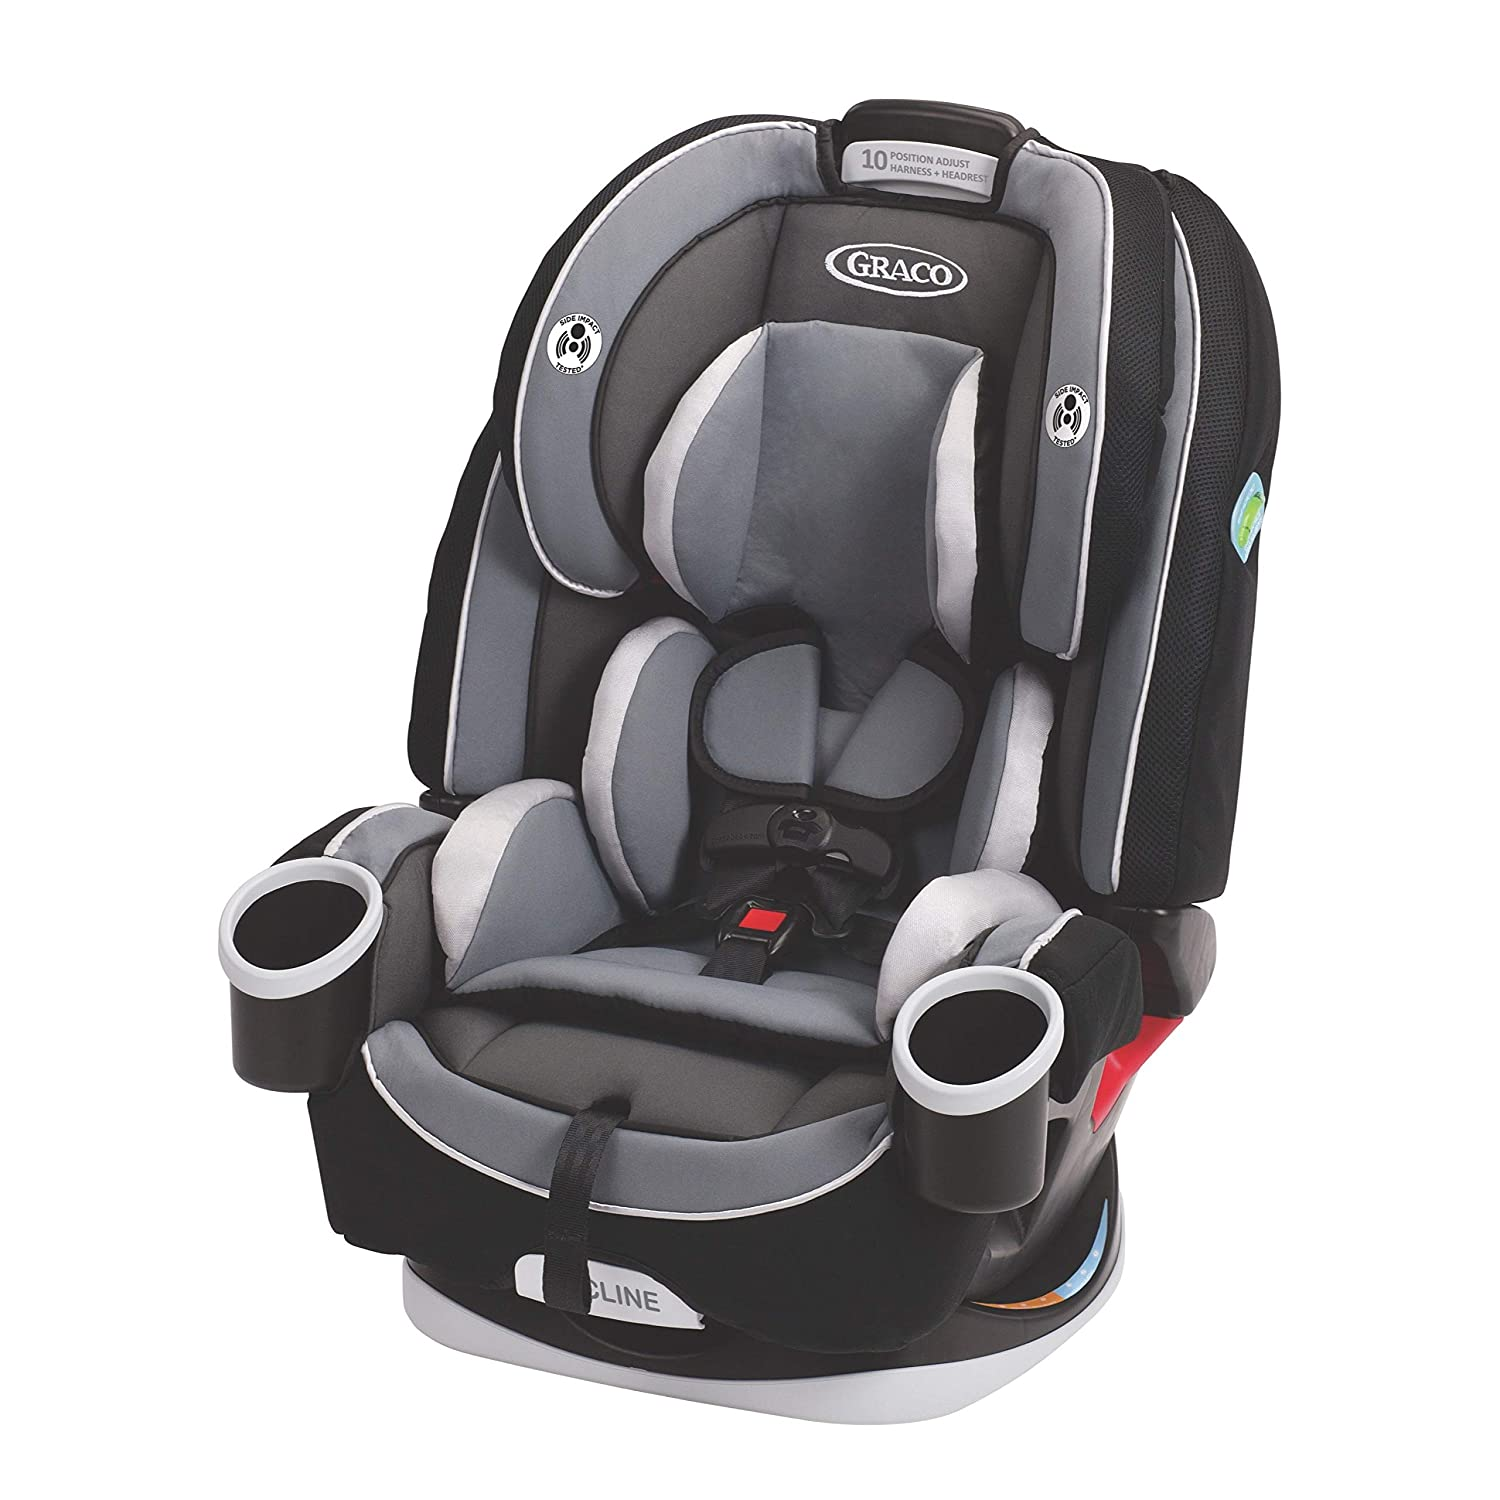 25 Best Convertible Car Seats for Baby, Toddlers, and Kids ...